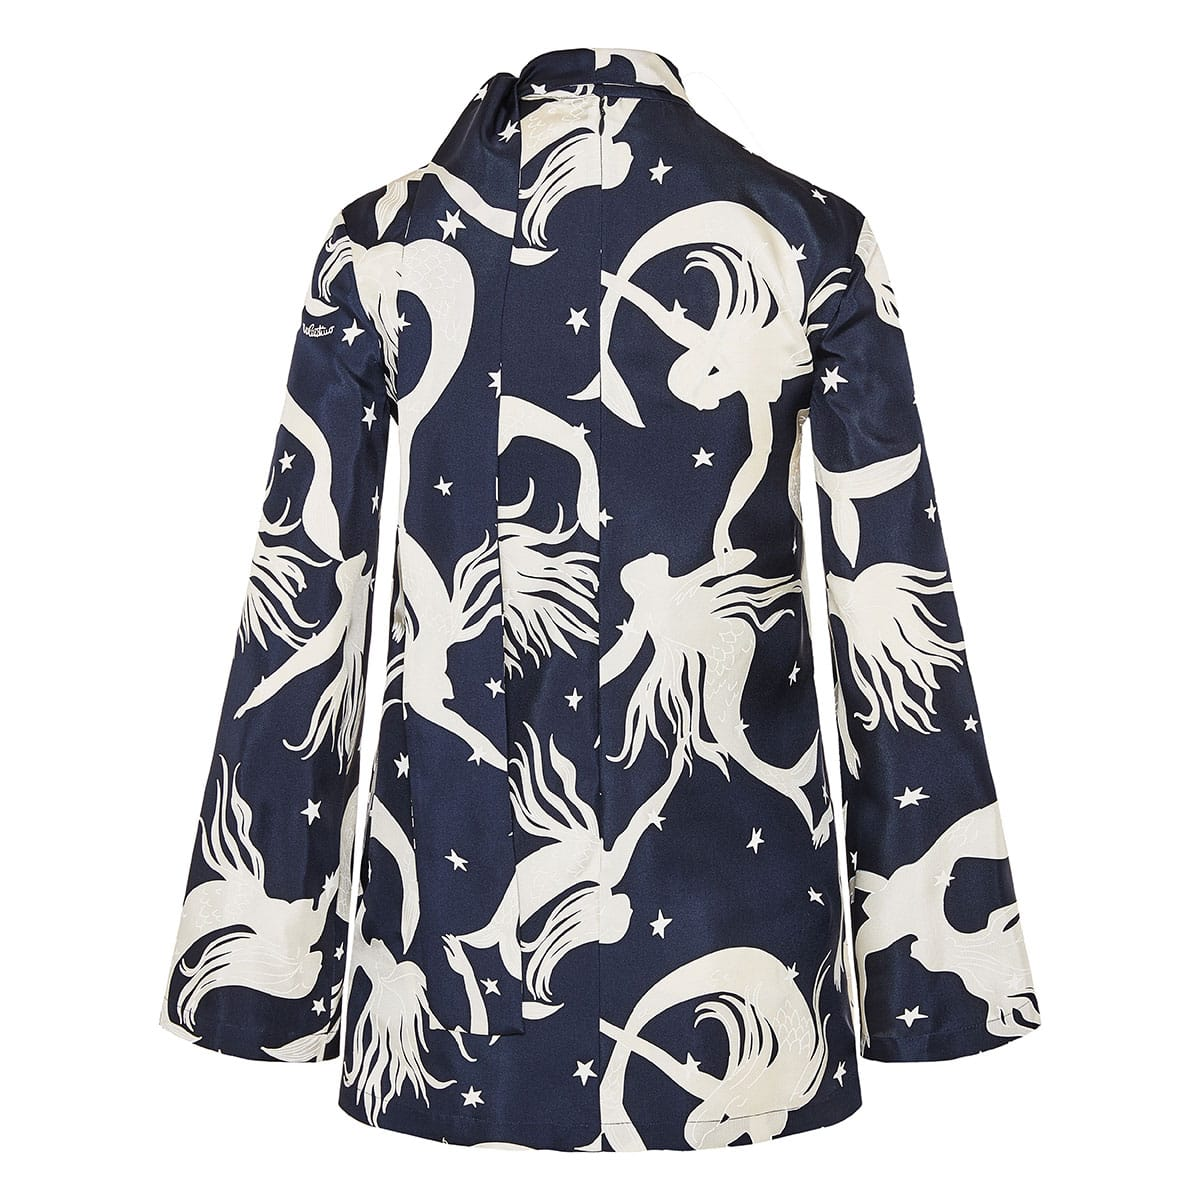 Bow-tie printed twill blouse